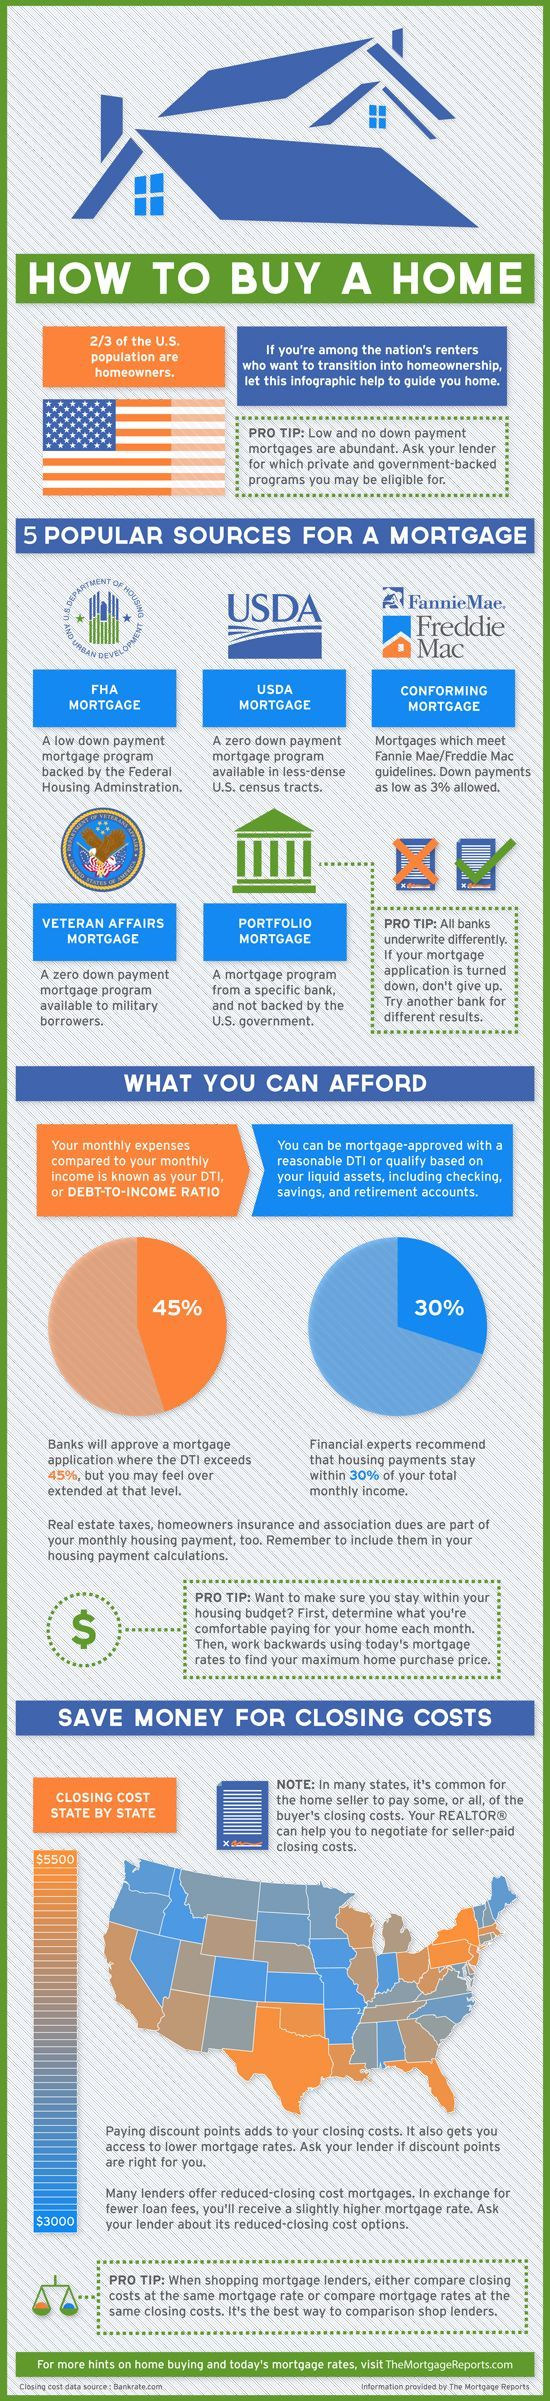 How To Buy A Home : Infographic via The Mortgage Reports buy a home buying your first home #homeowner